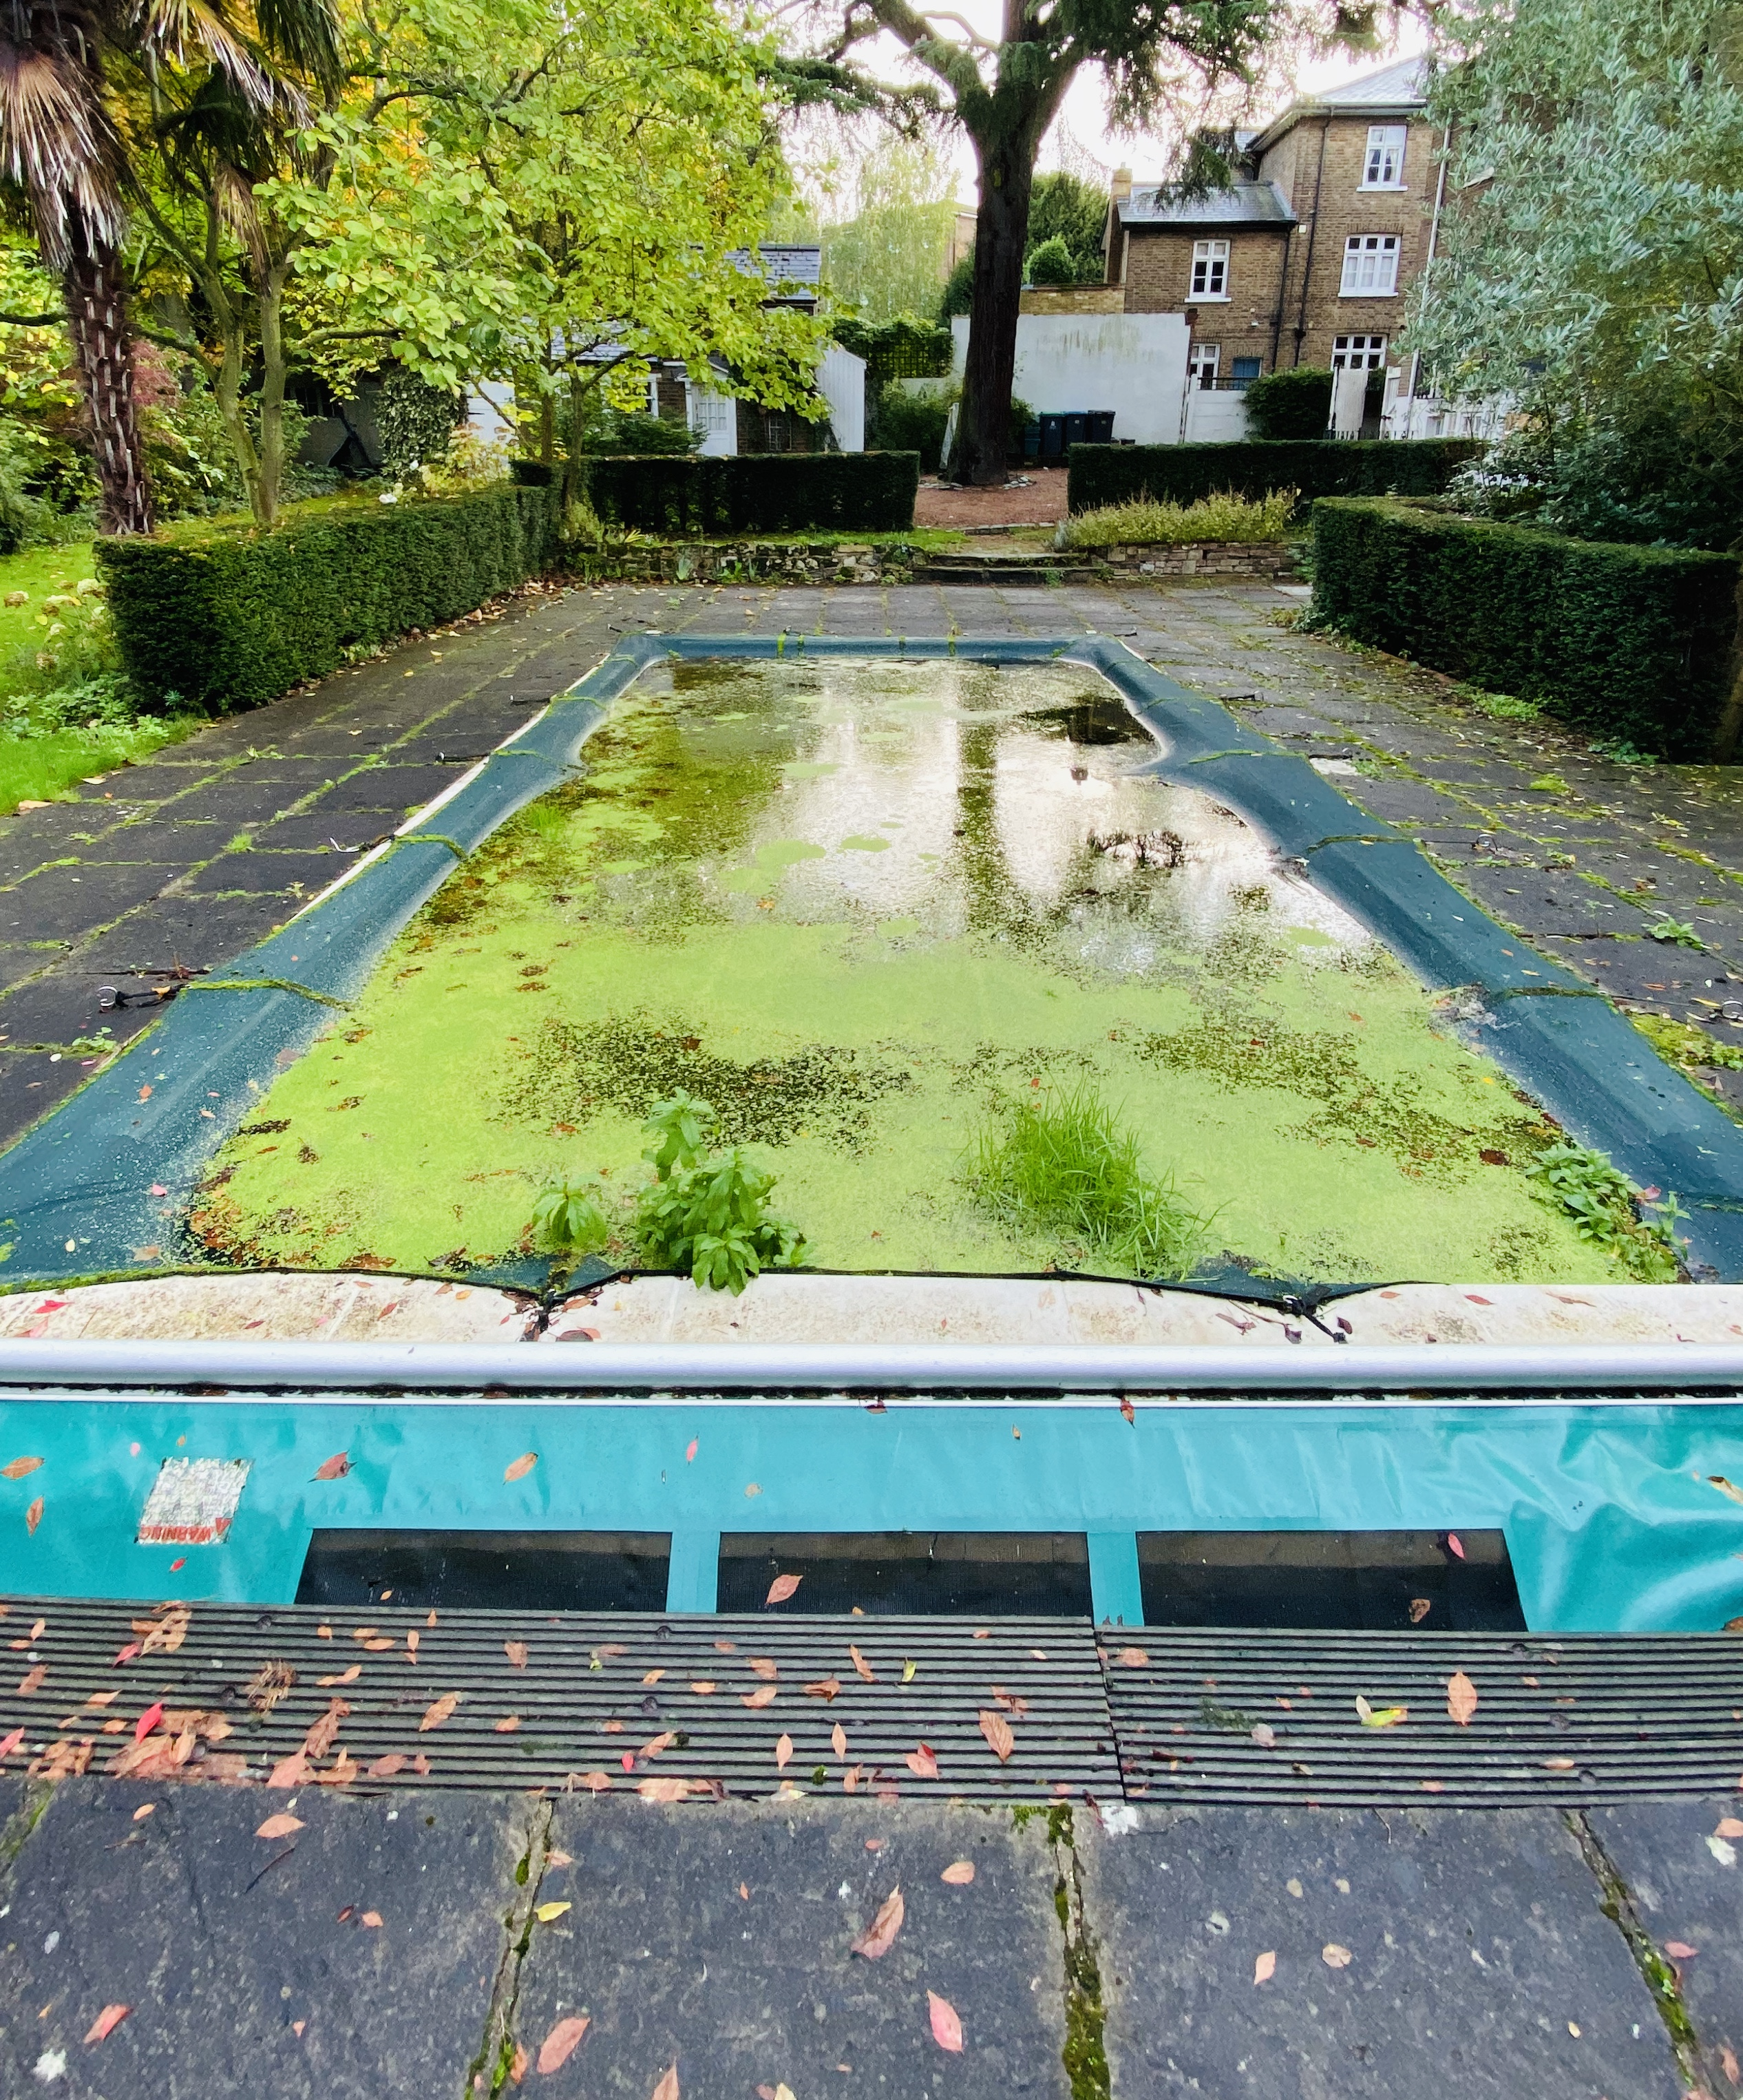 Draining and cleaning an unused residential swimming pool in Cobham, Surrey